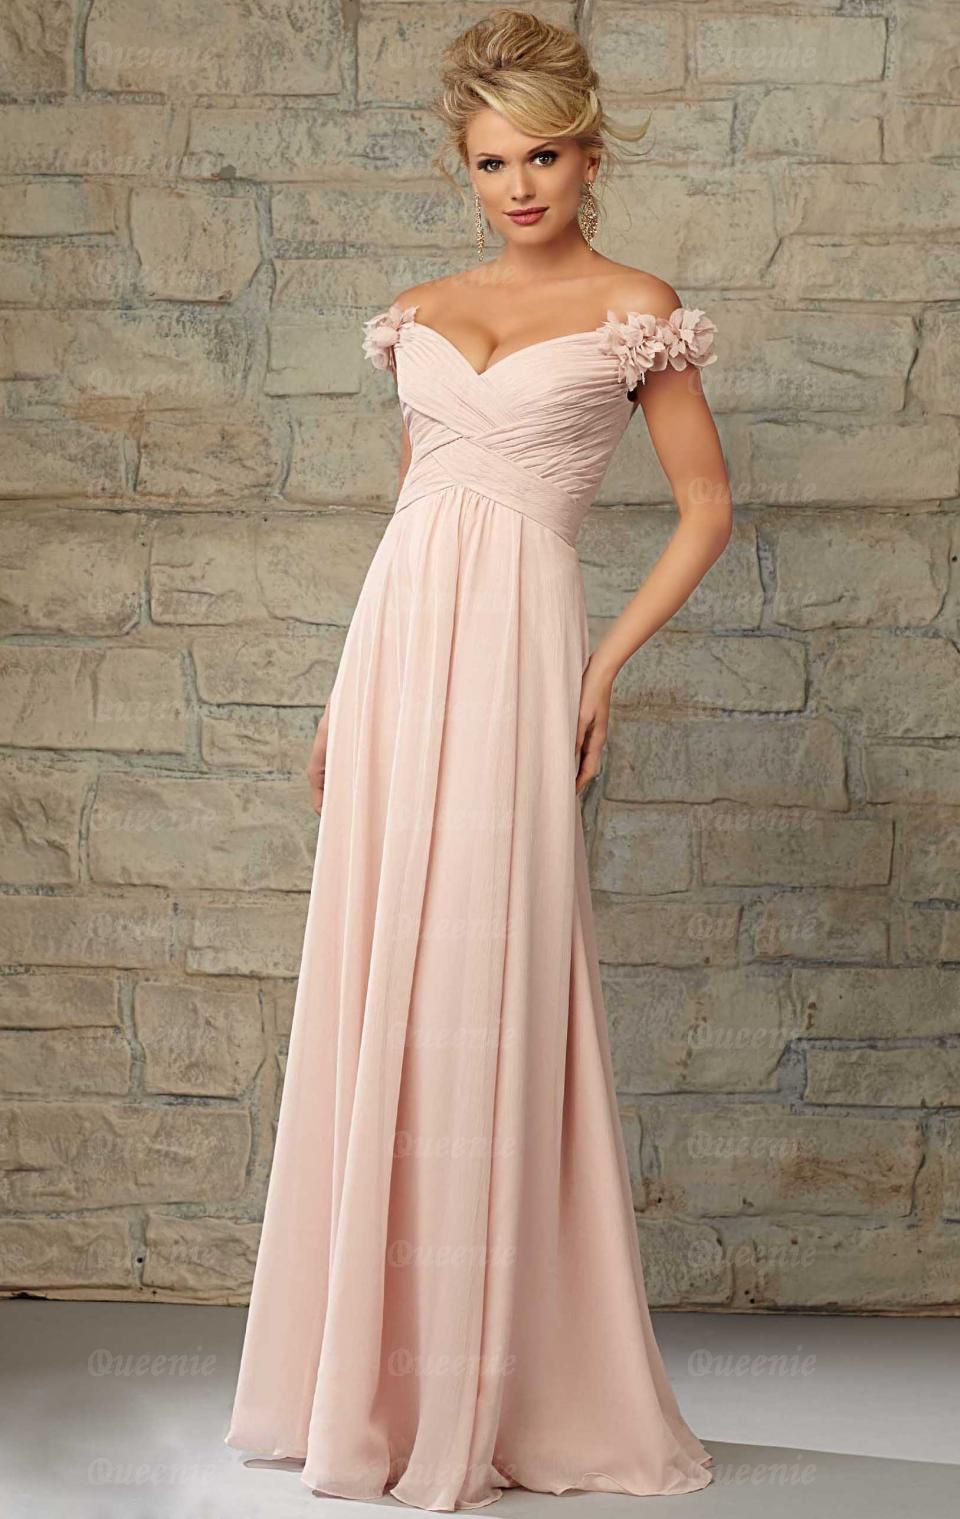 Elegant chiffon pink bridesmaid dresses pink bridesmaid dress angelina faccenda bridesmaids by mori lee 20453 ruffled off the shoulder long luxe chiffon bridesmaid dress designed by madeline gardner ombrellifo Choice Image